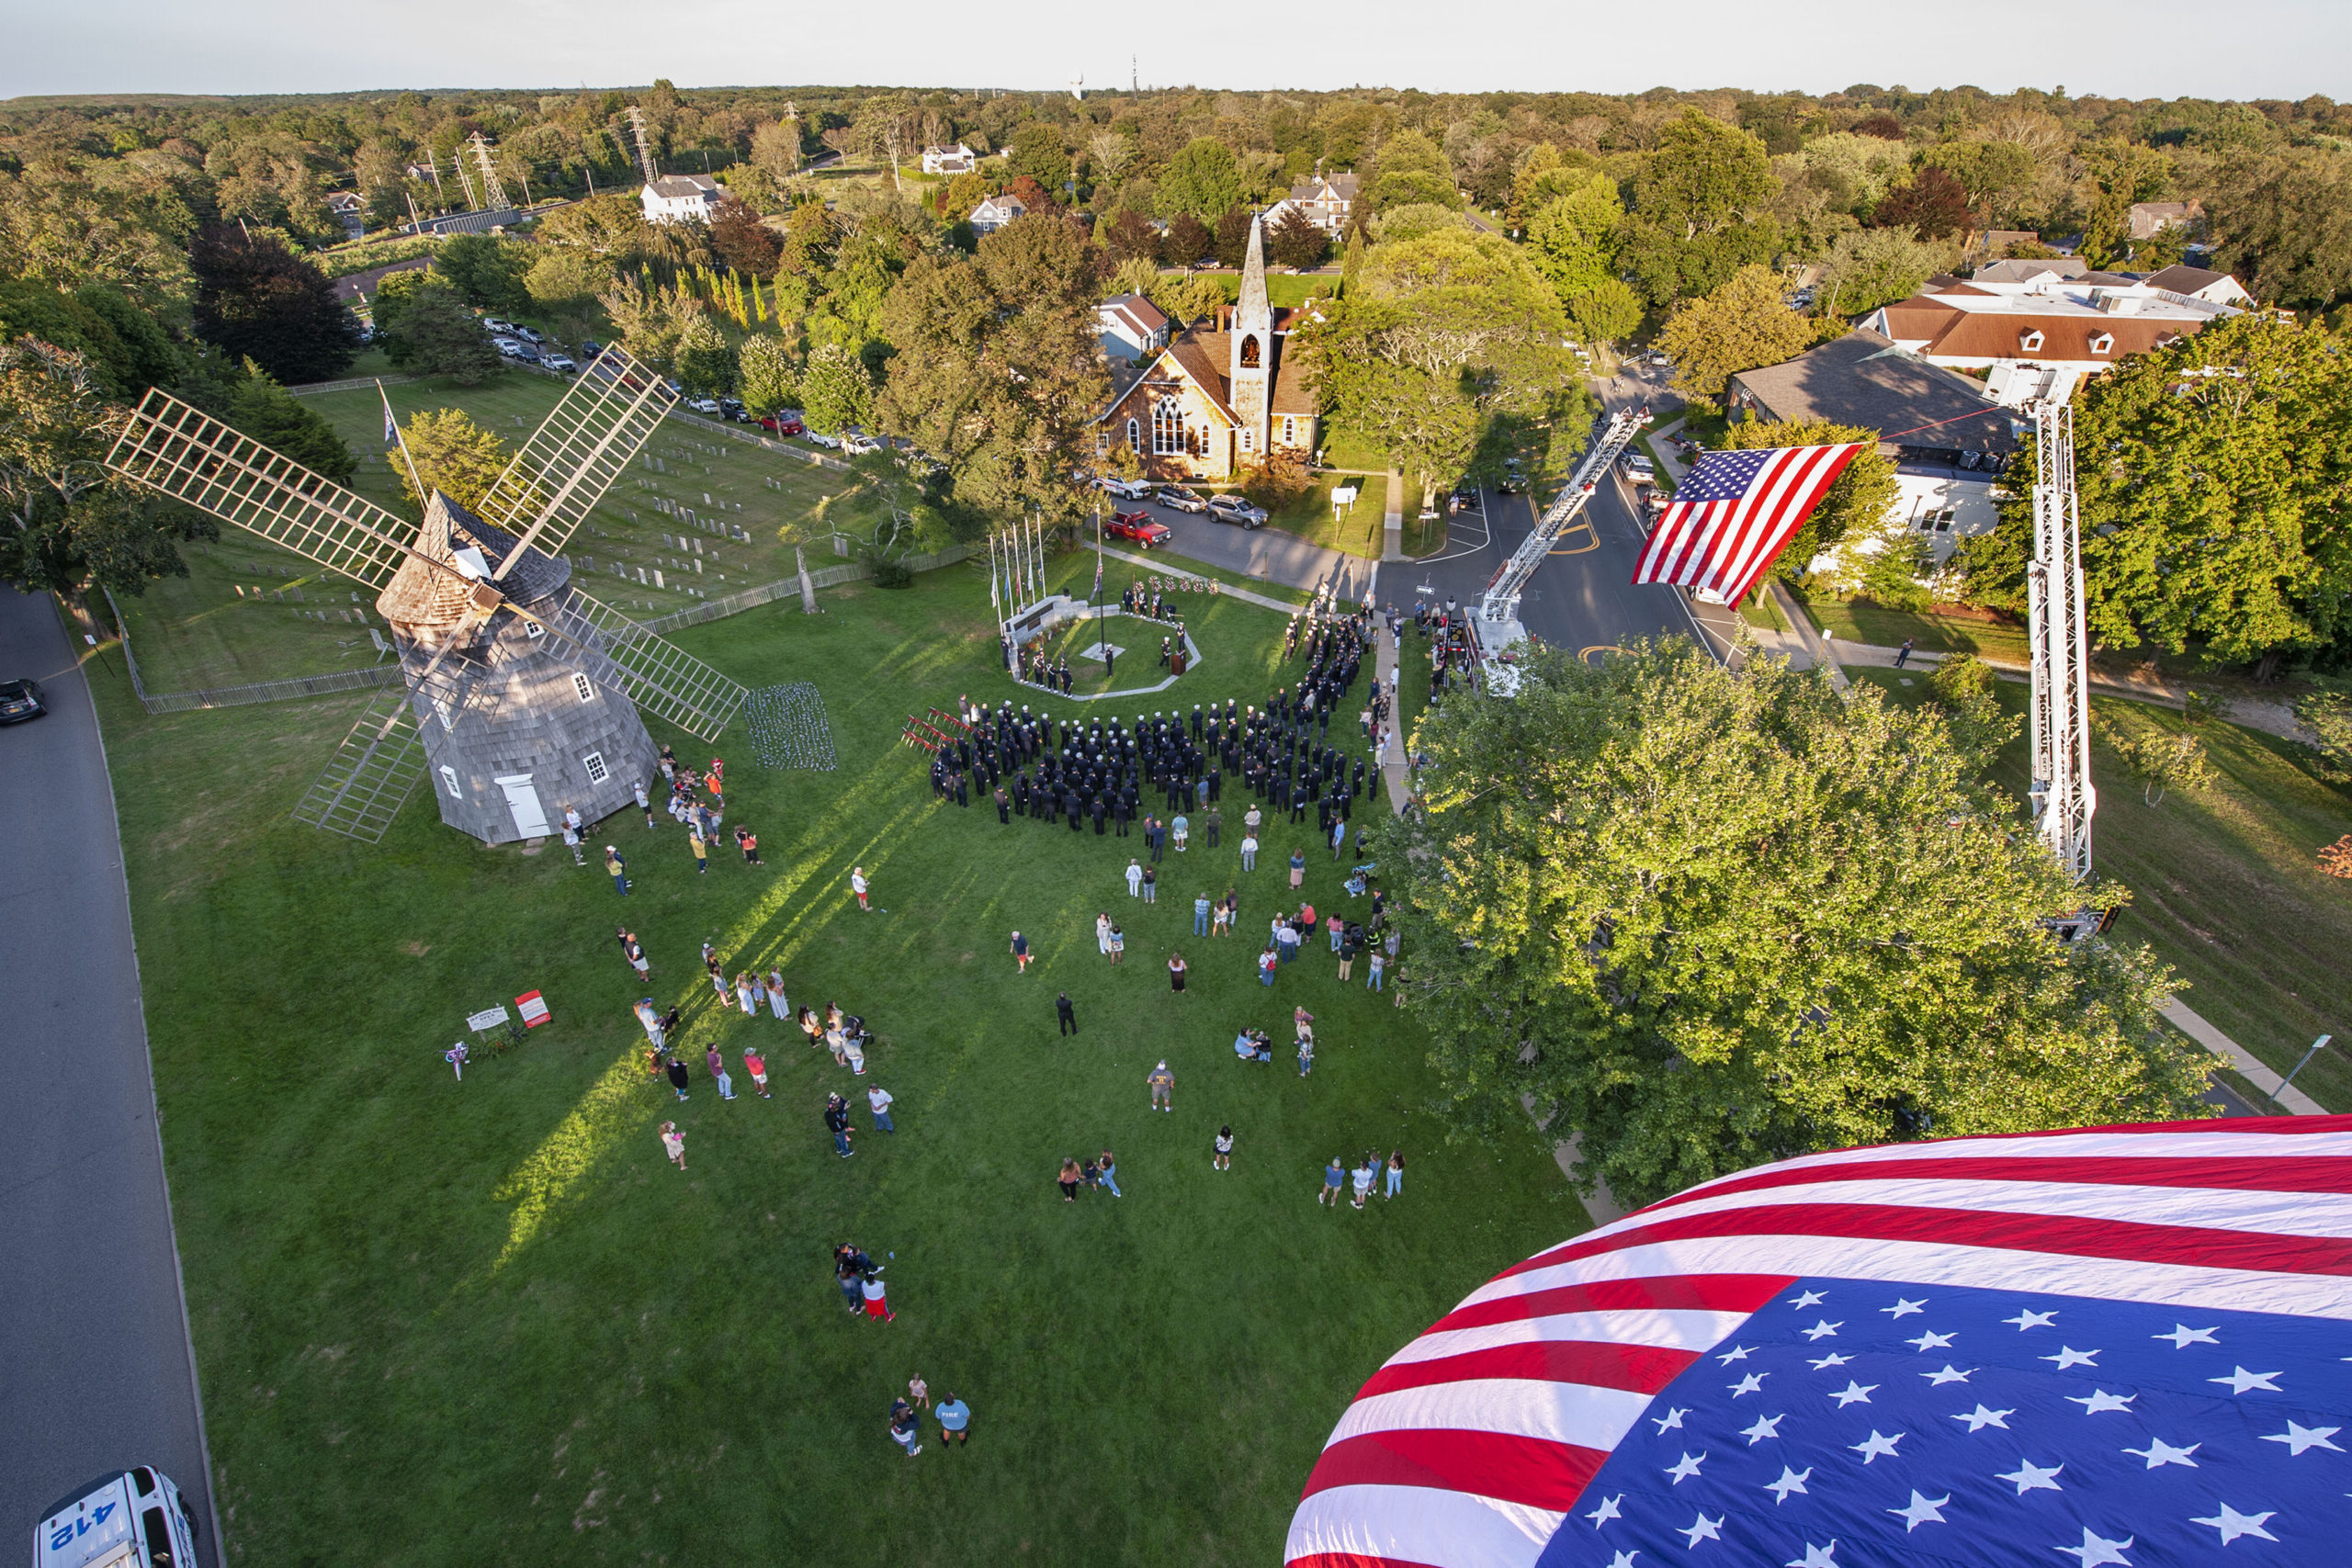 Large American flags fly over the East Hampton Village Green and Montauk Highway - courtesy of the East Hampton,  Sag Harbor, Bridgehampton and Montauk Fire Departments - during a ceremony commemorating the 20th anniversary of the attack on the World Trade Center, held on the Village Green in East Hampton and attended by 11 different East End fire, police and EMS agencies on Saturday afternoon.